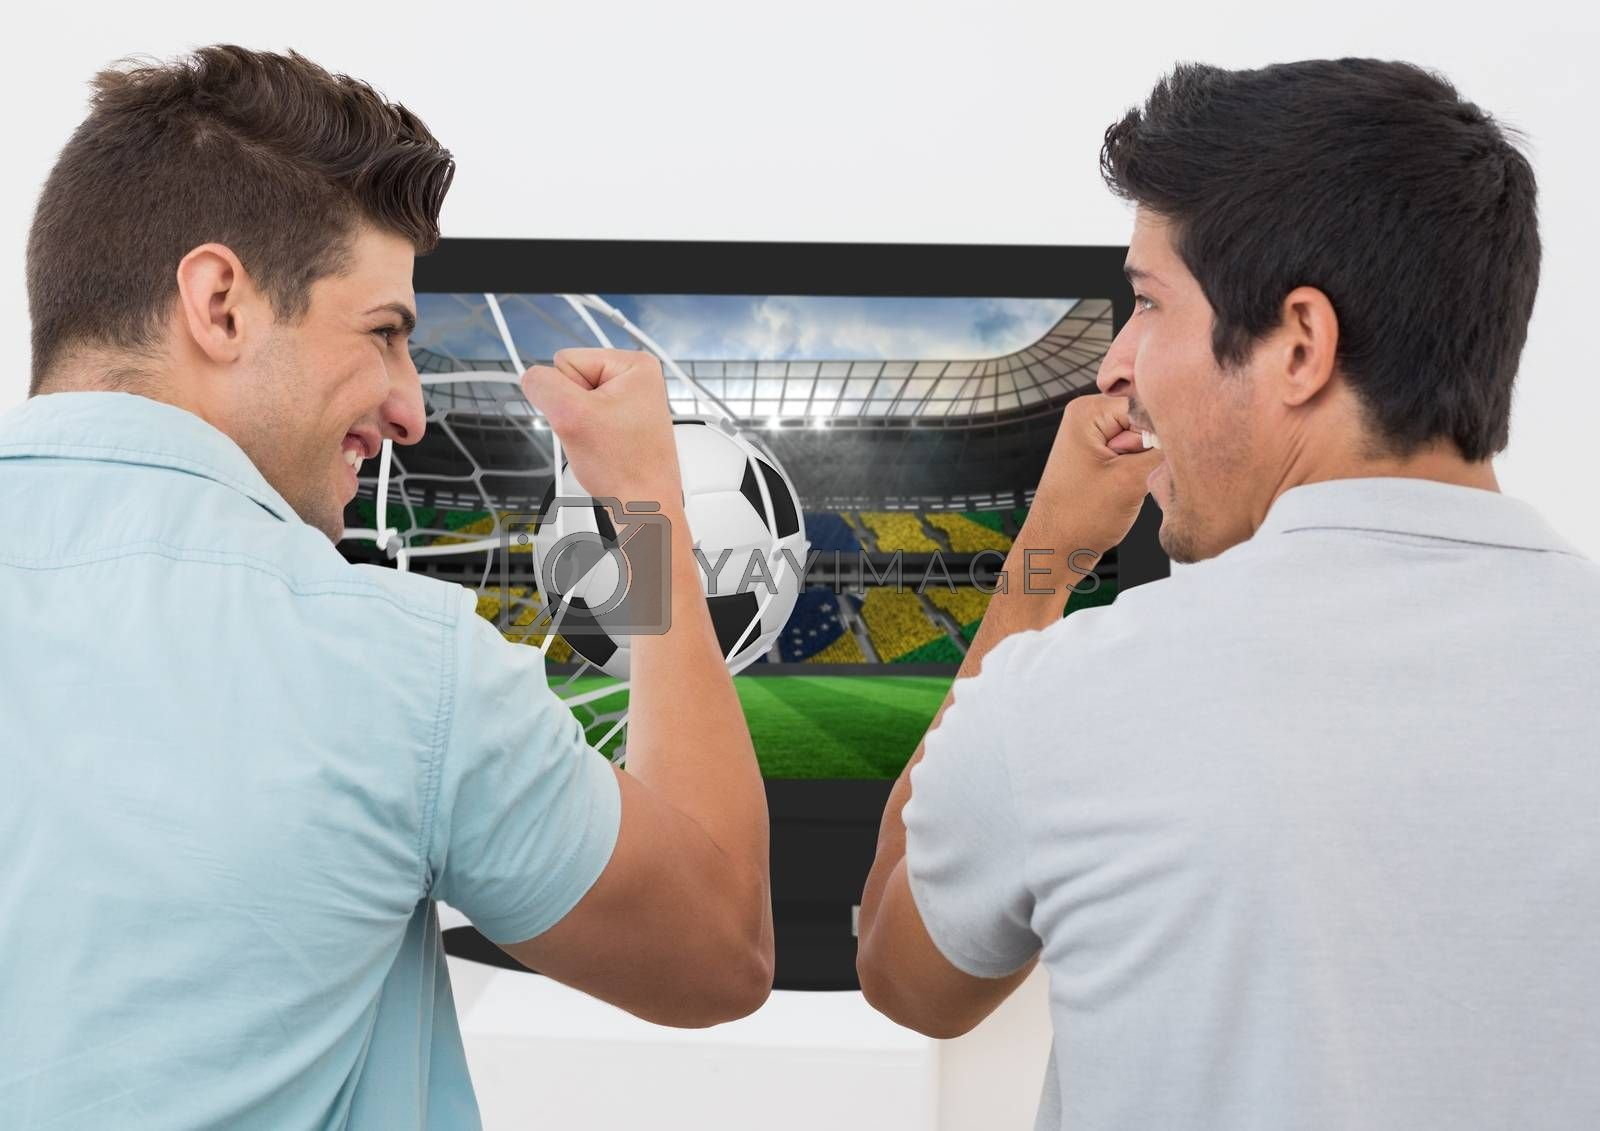 Friends cheering while watching soccer match on television against white background